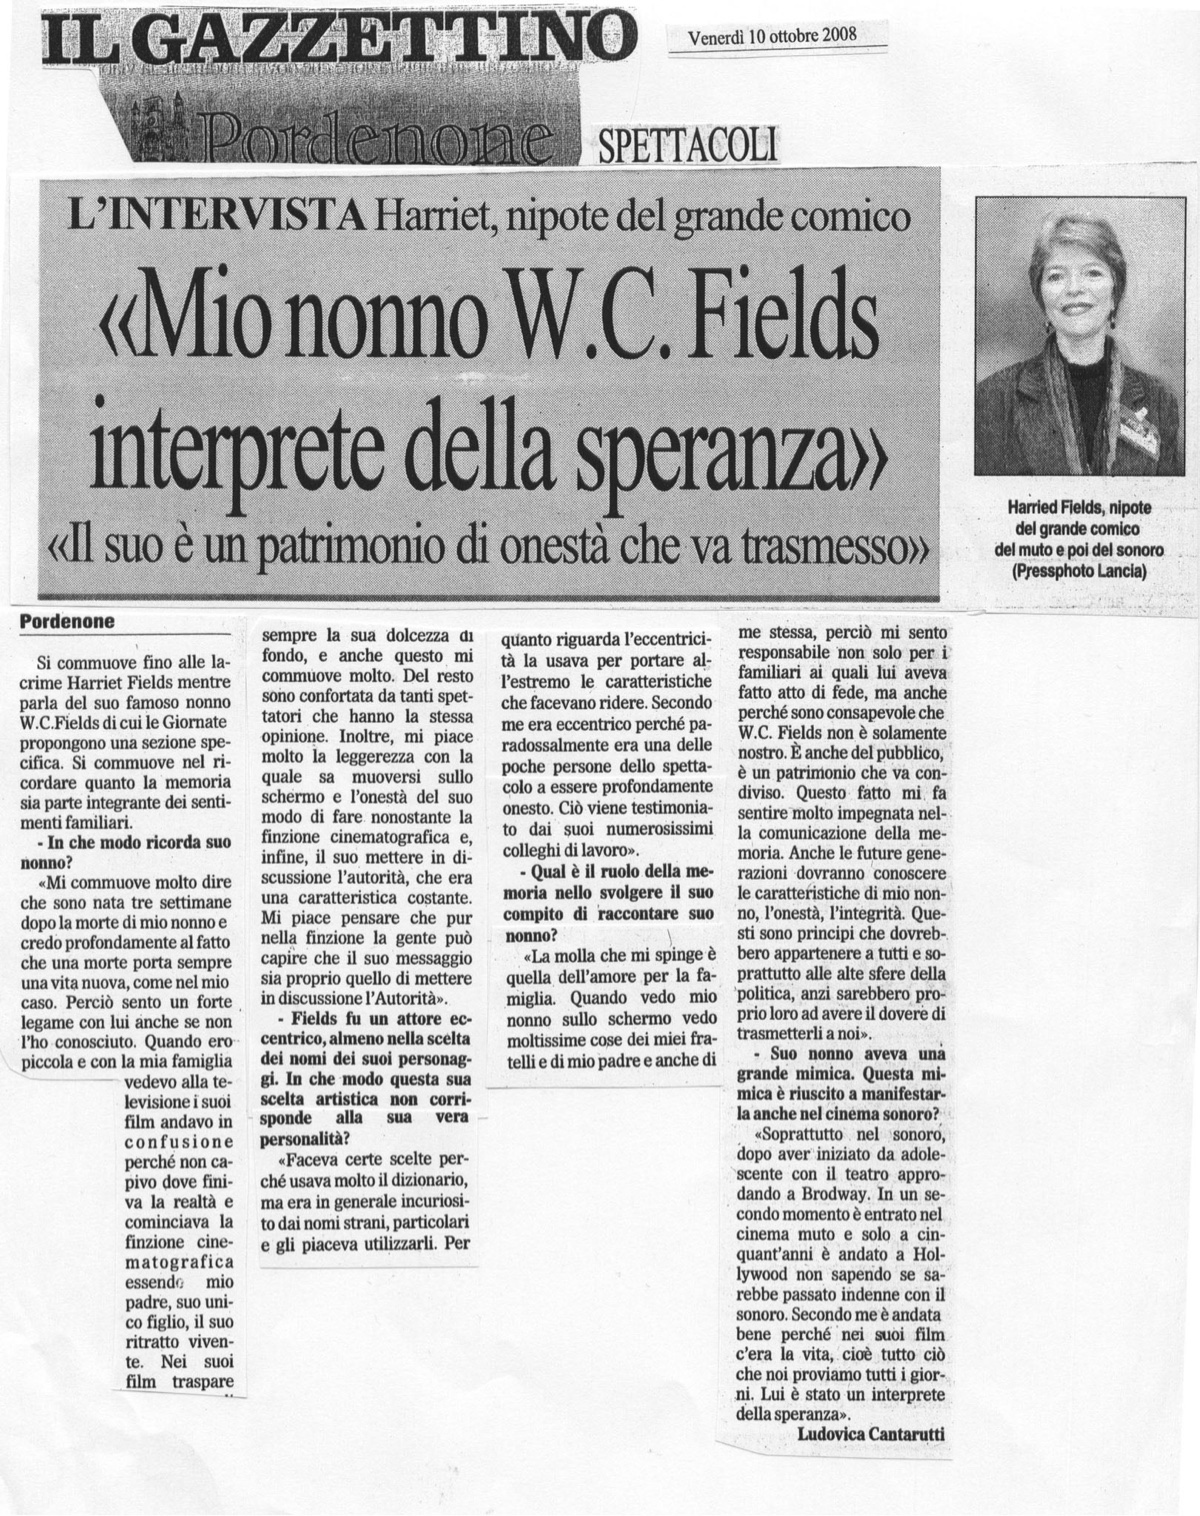 Il Gazzettino article clipping on W.C. Fields